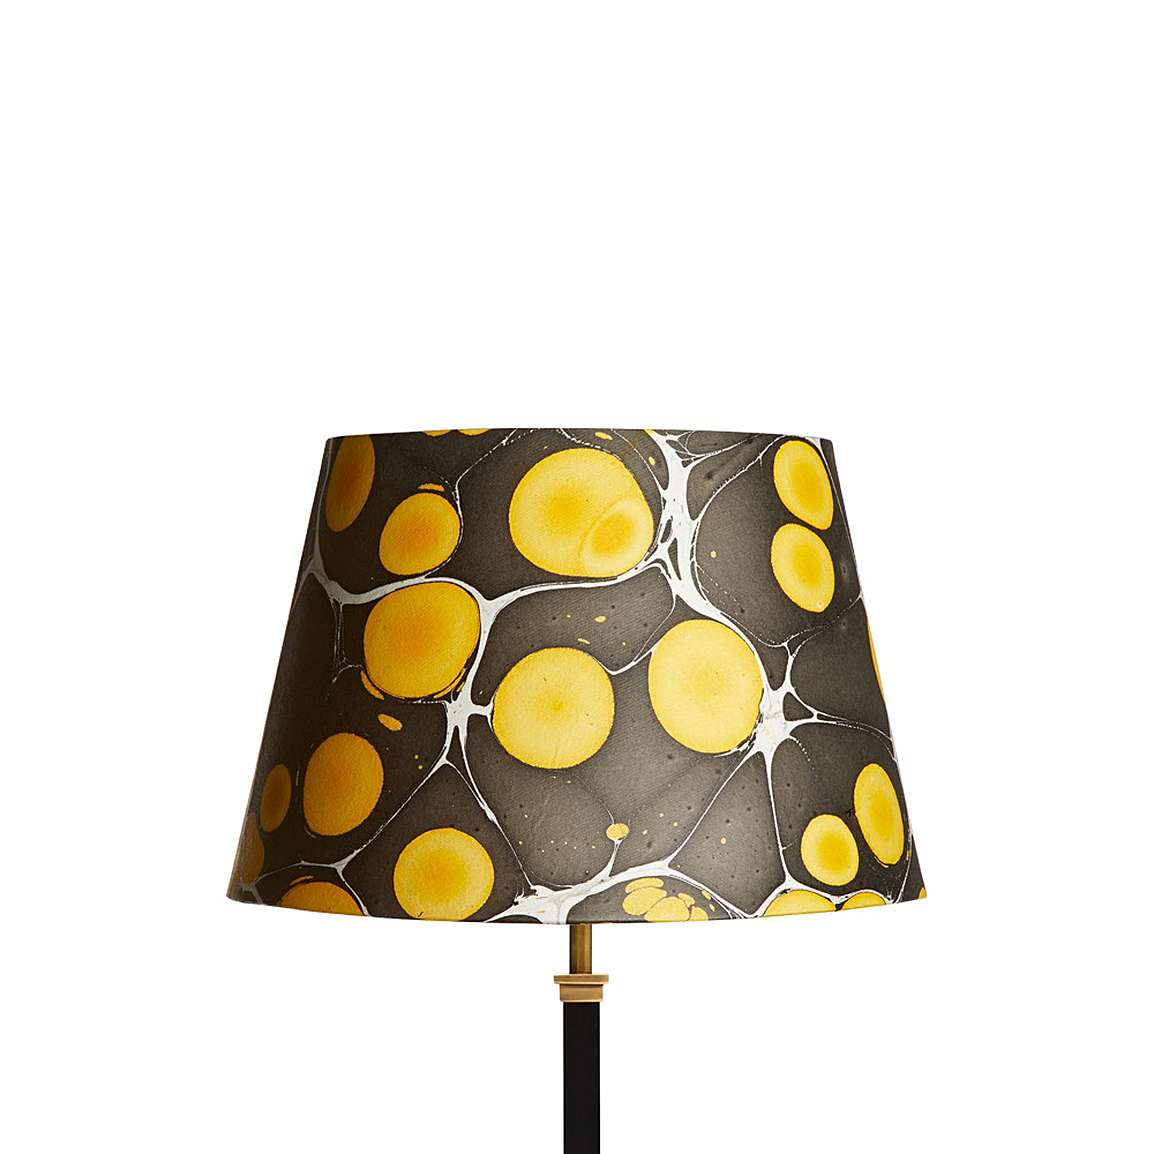 Marbled Paper Lampshade in Acid Yellow & Black